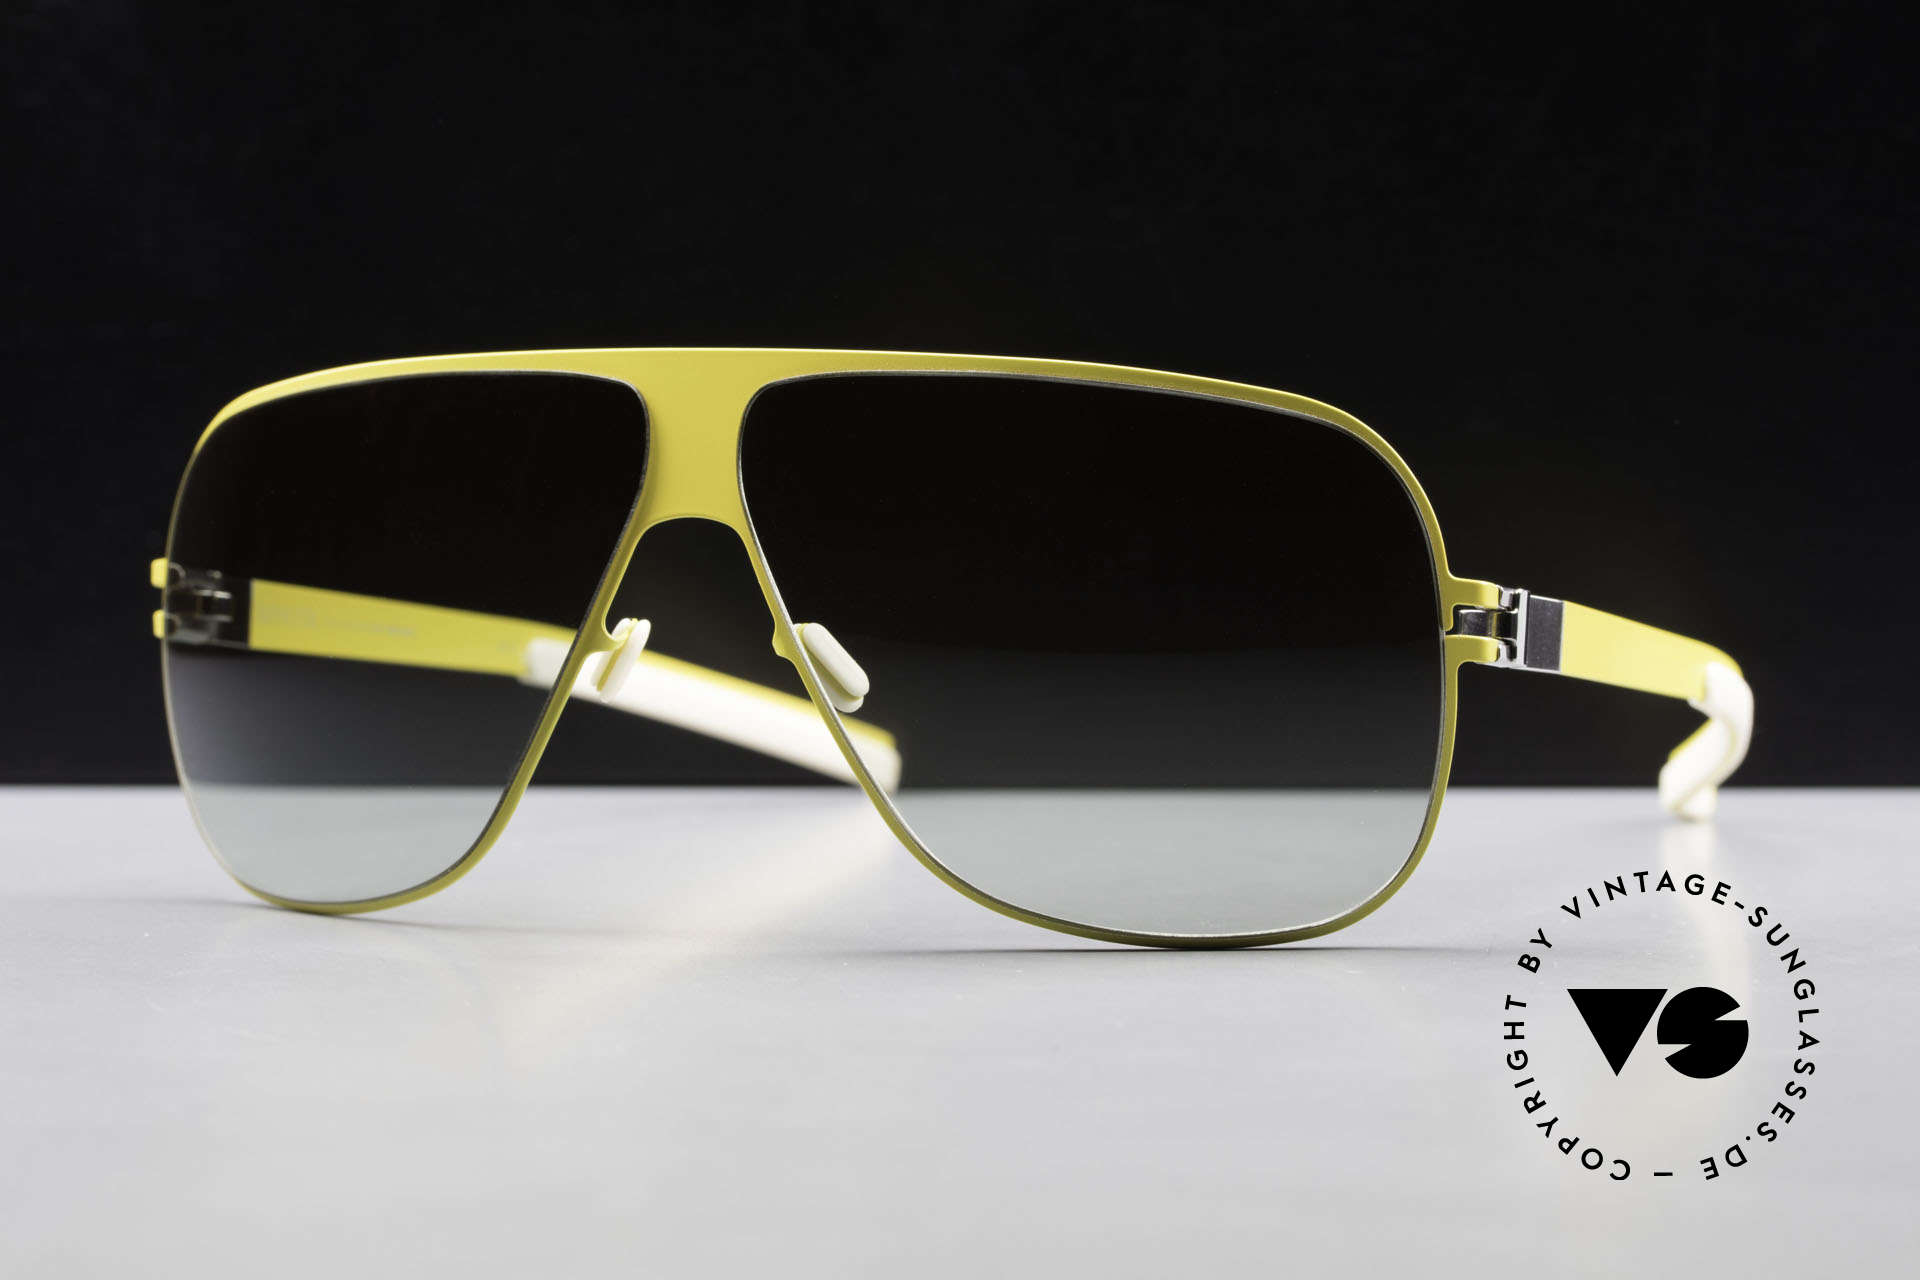 Mykita Hector Aviator Mykita Shades 2009's, Collection Flash Hector Yellow, green-gradient, 65/08, Made for Men